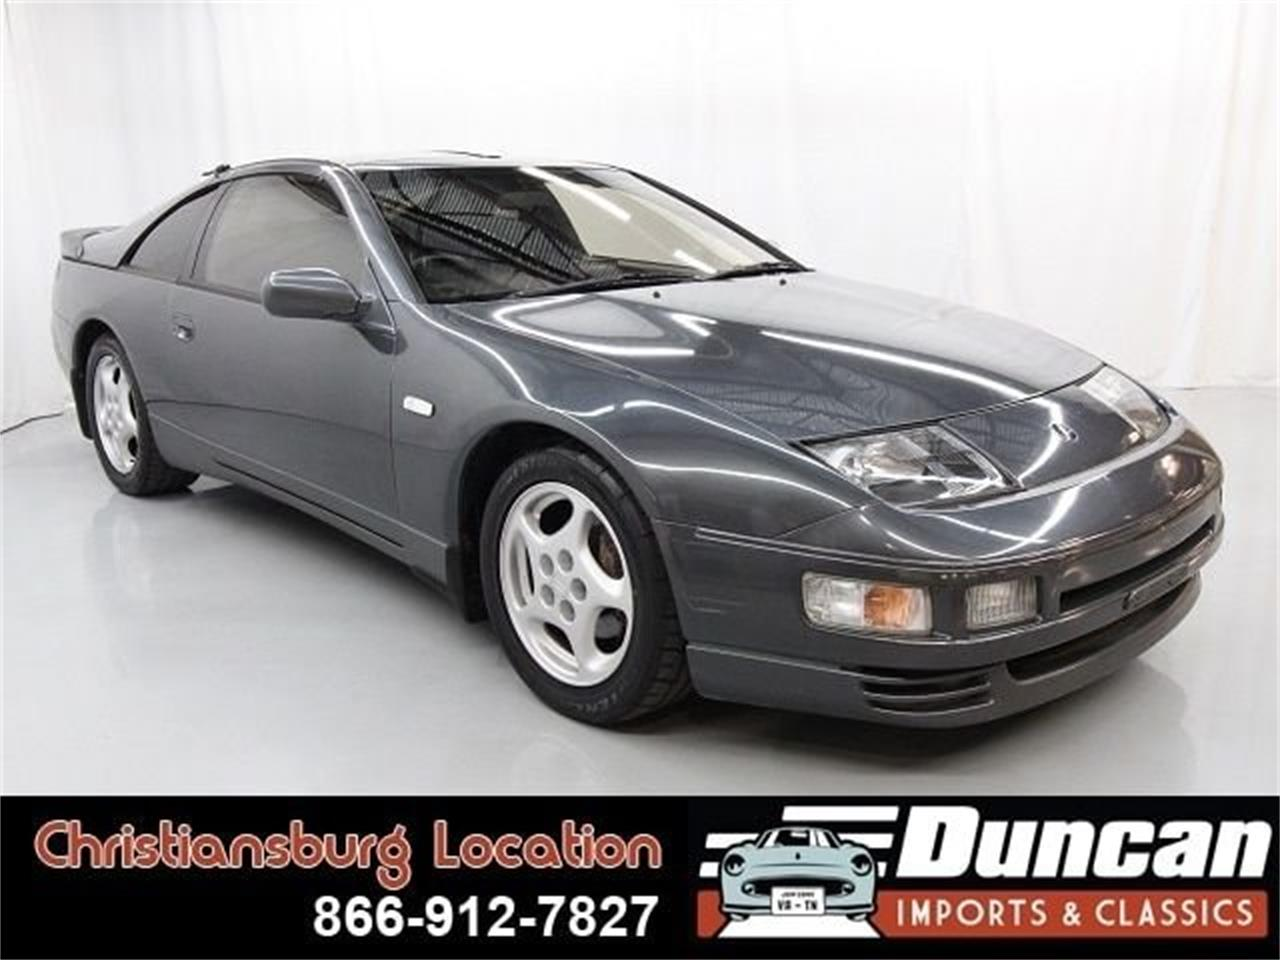 1992 Nissan 280ZX (CC-1388773) for sale in Christiansburg, Virginia